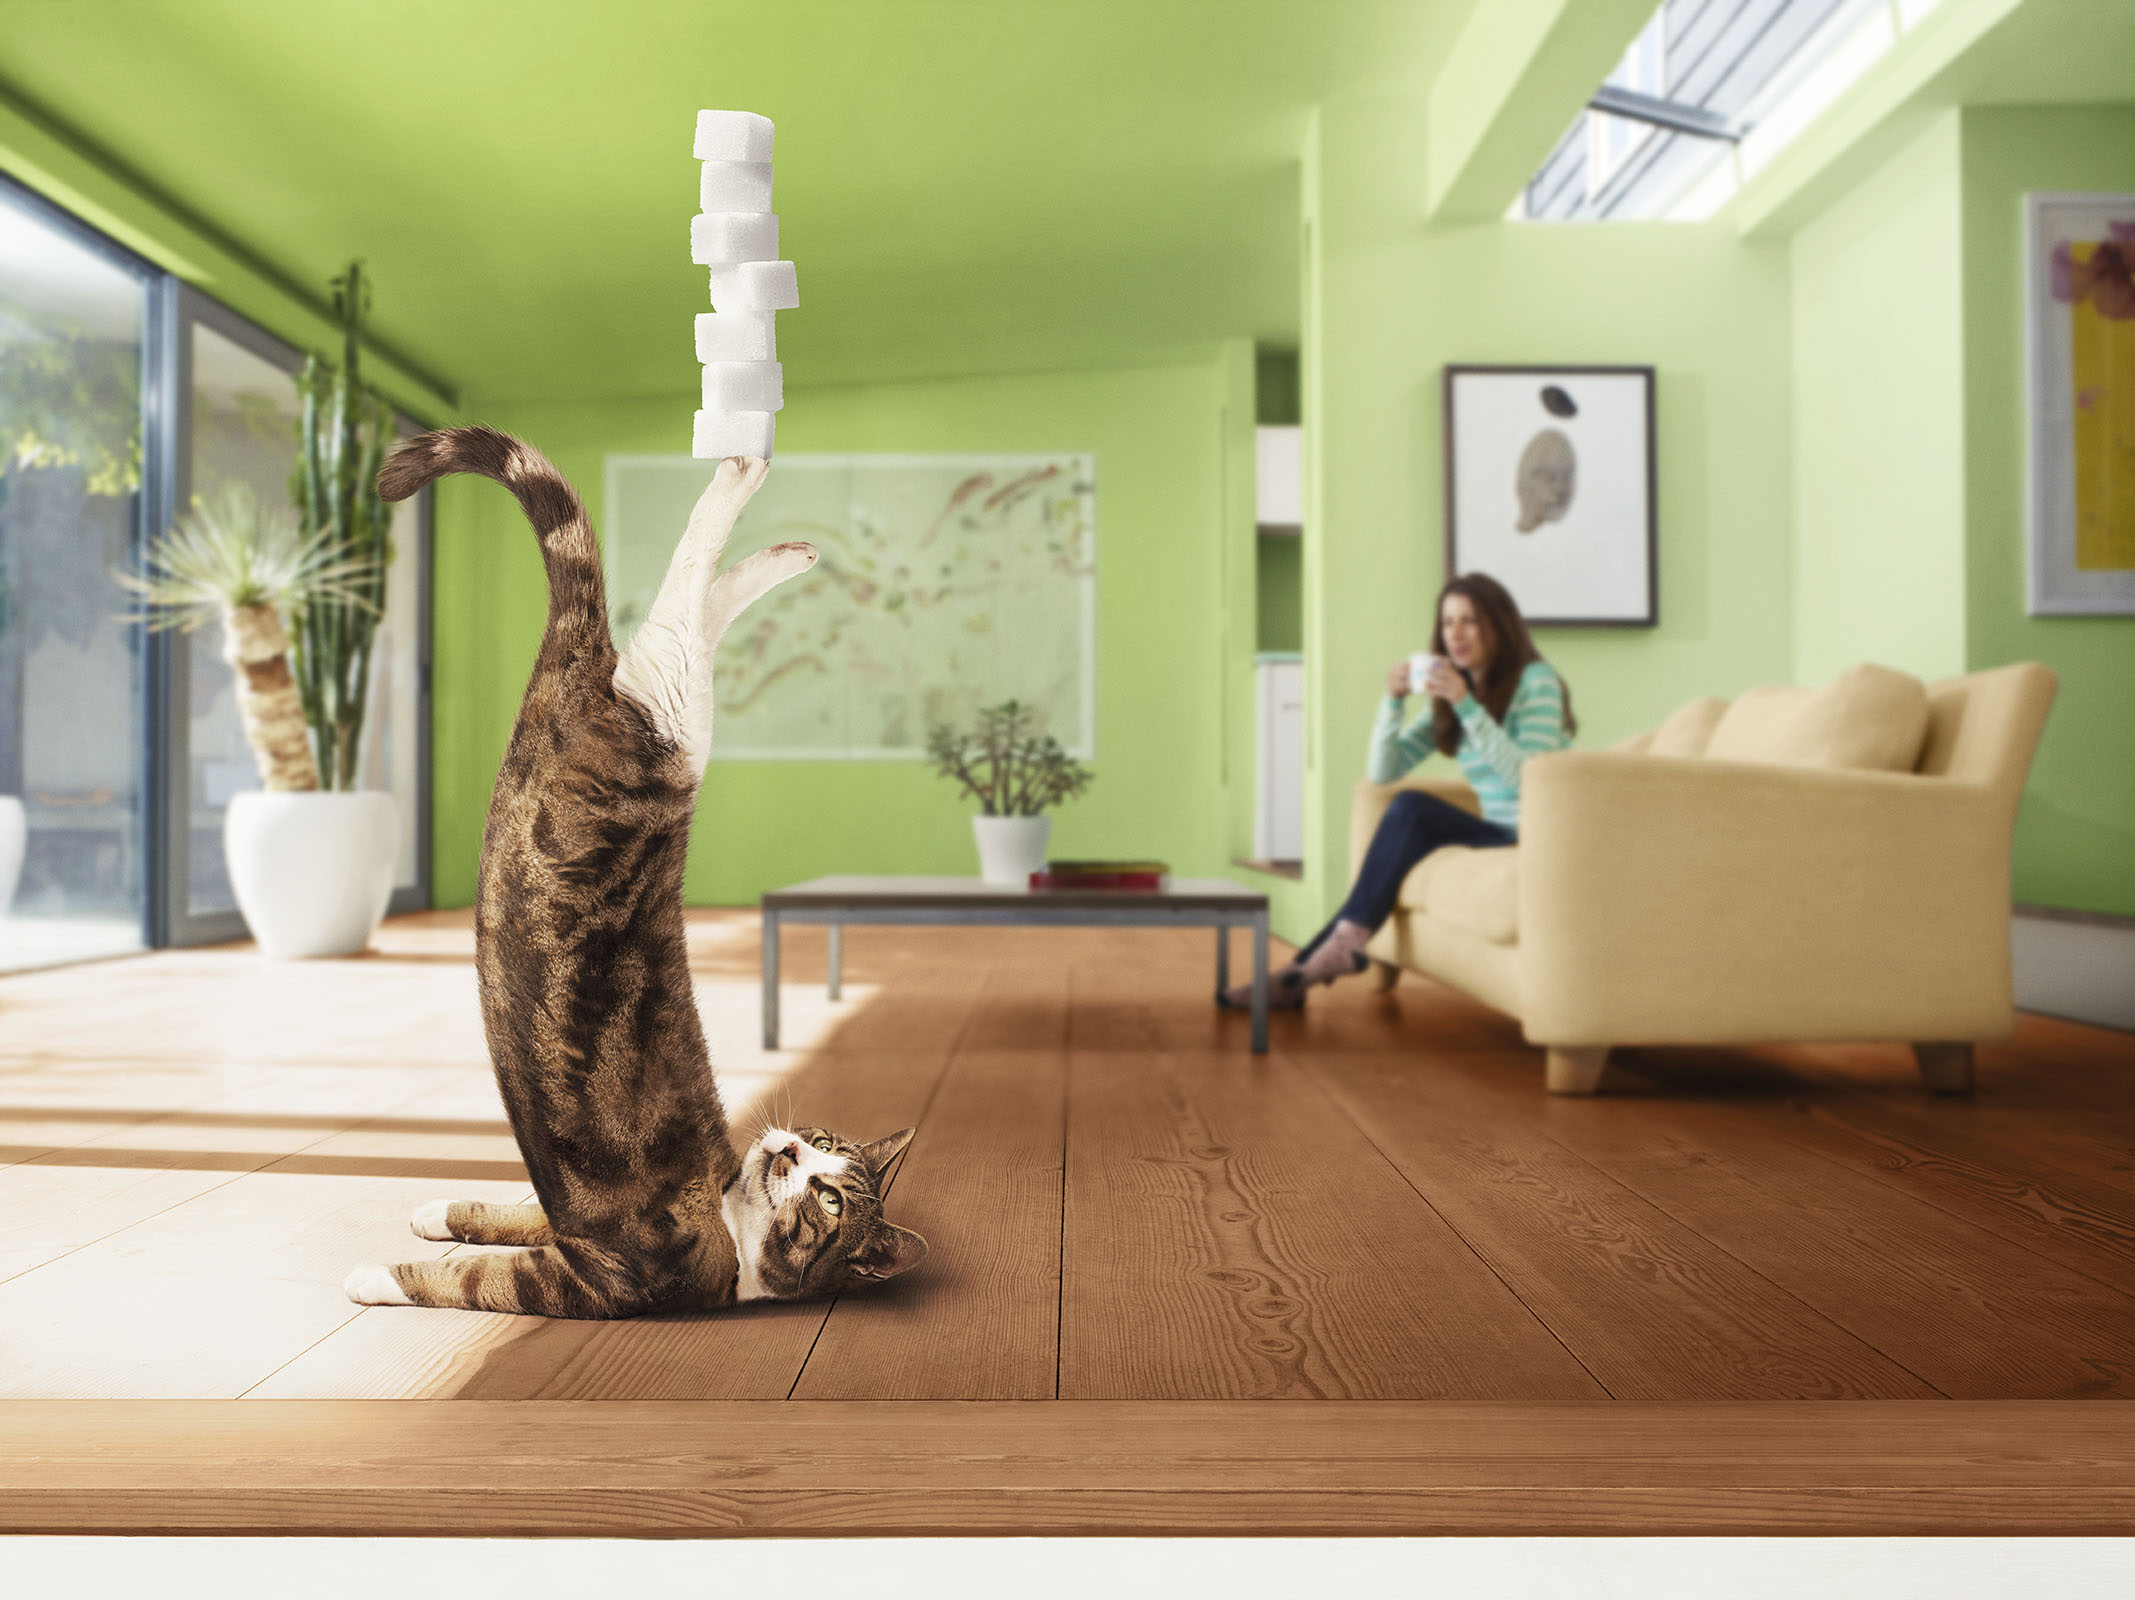 Alex Howe animal yoga cat balancing sugar cube lump in house with owner